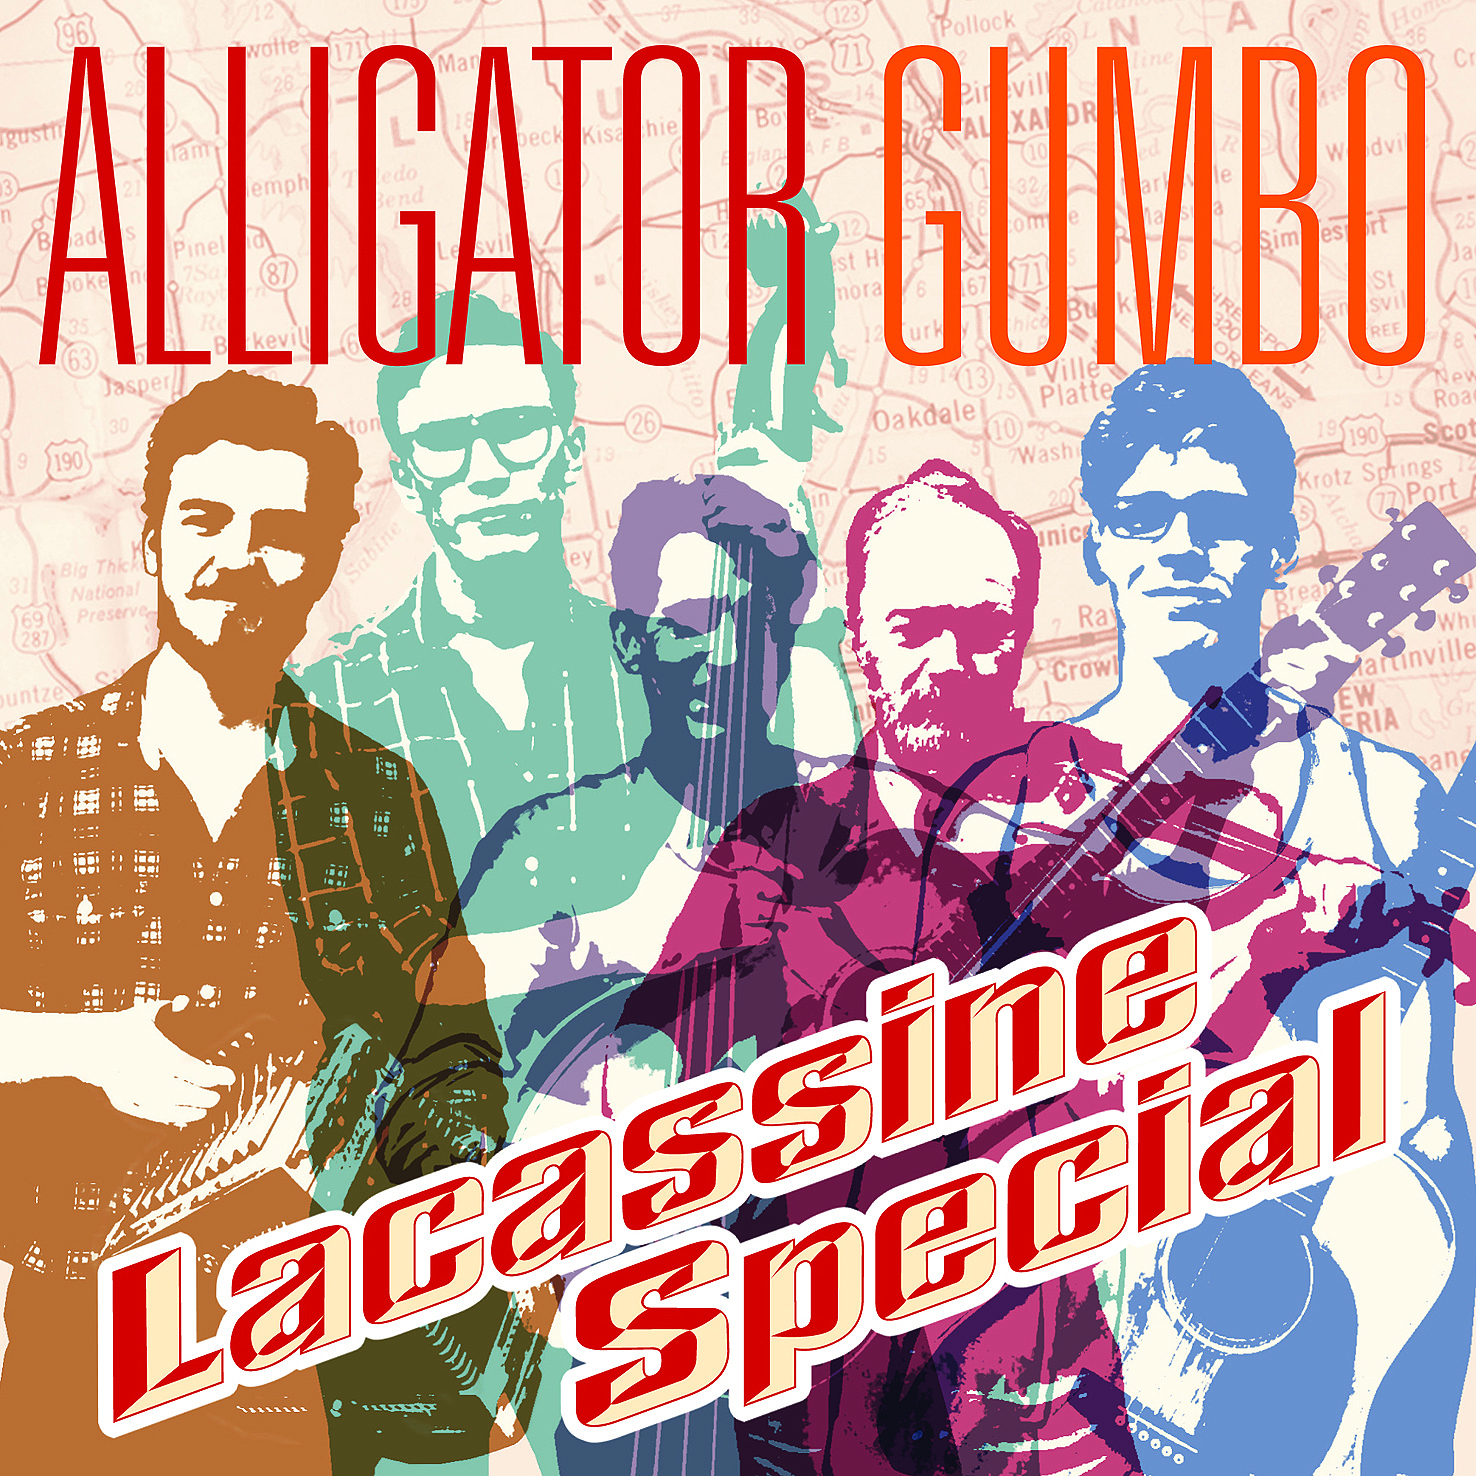 No longer available from us. Since Nov. 2014 distributed by Rootsy.nu Alligator Gumbo - Lacassine Special monophon MPHEP006, 2012.